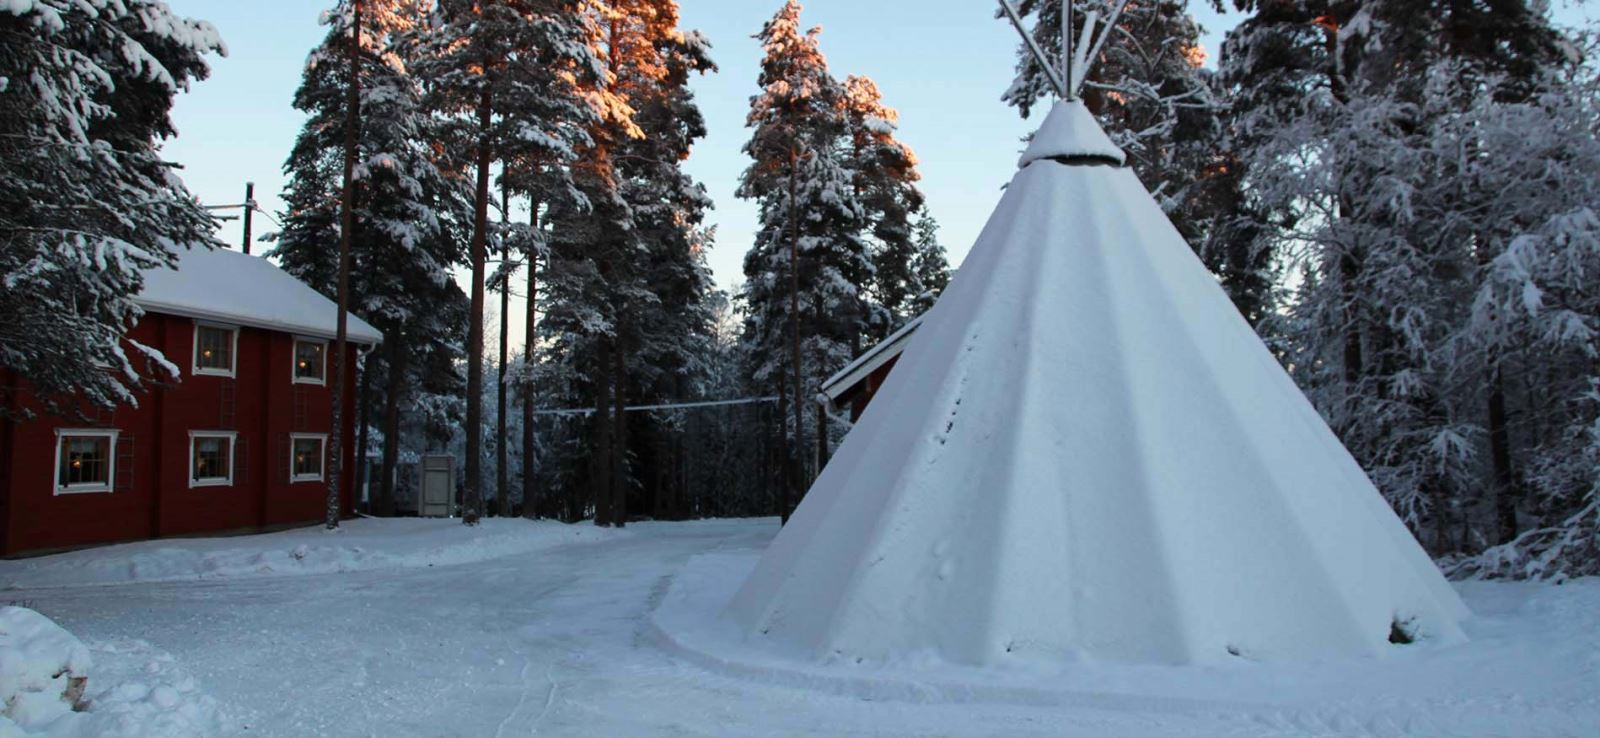 loma-vietonen-lodge-lapland-header